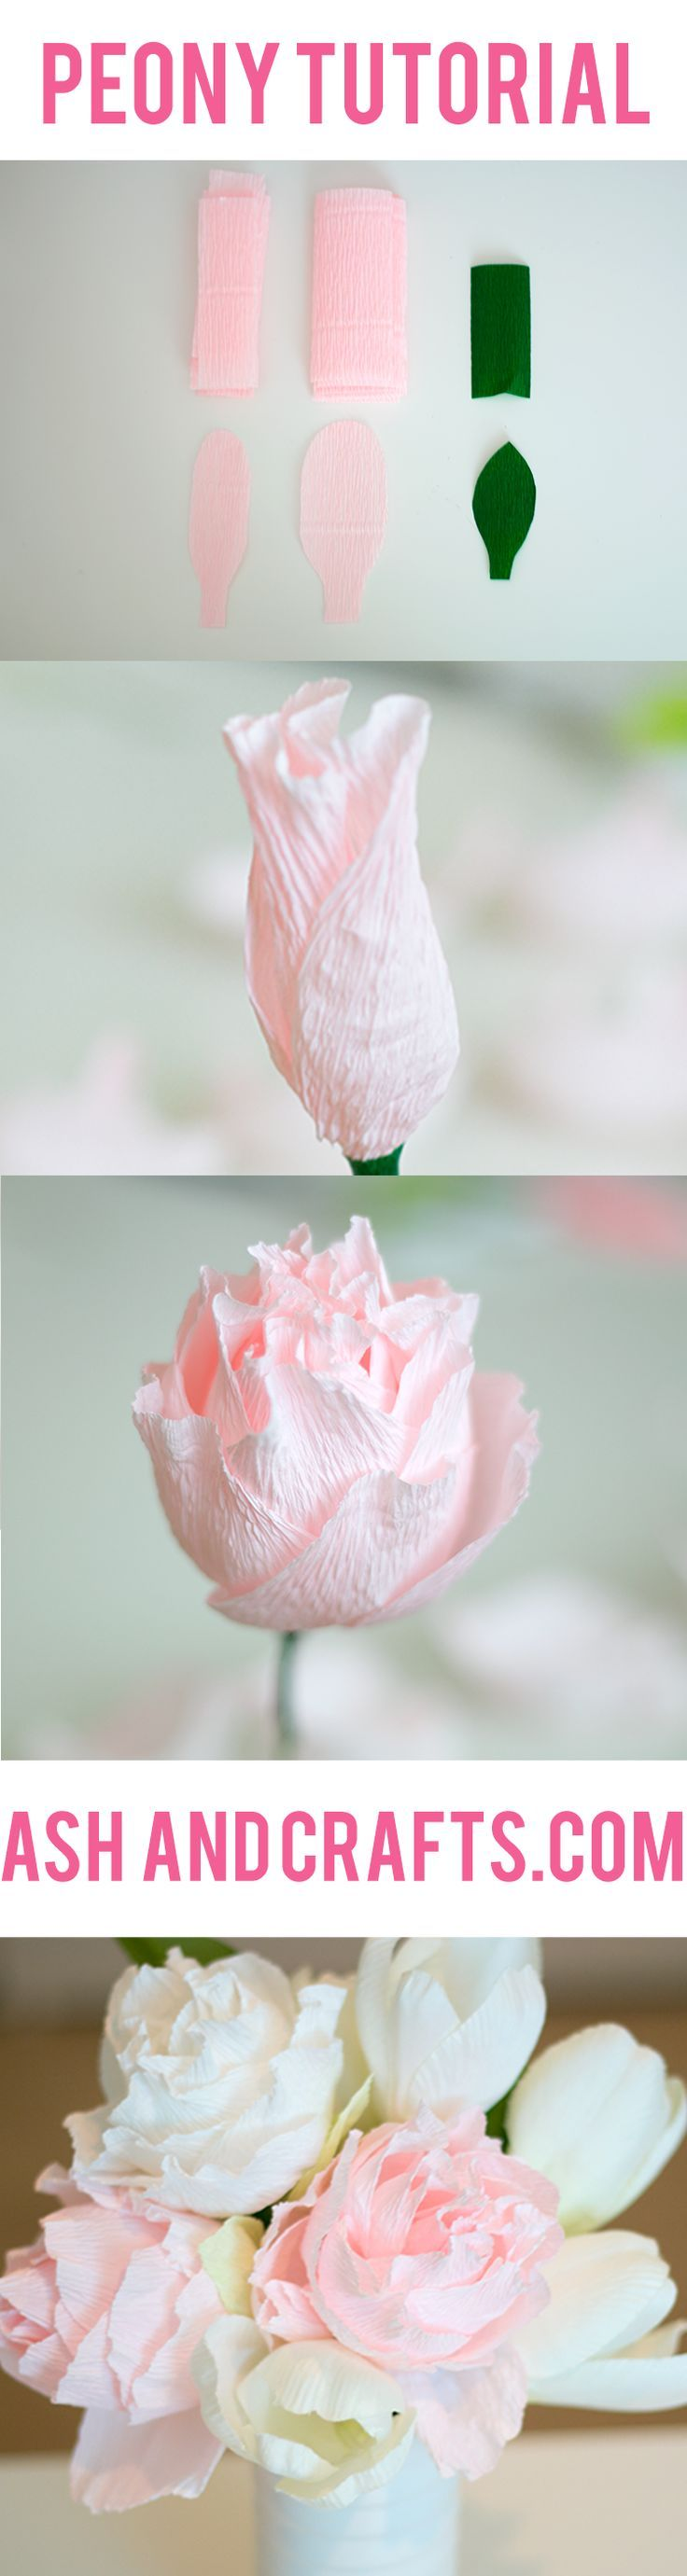 paper peony tutorial diy home decor pinterest papier blumen und blumen basteln. Black Bedroom Furniture Sets. Home Design Ideas